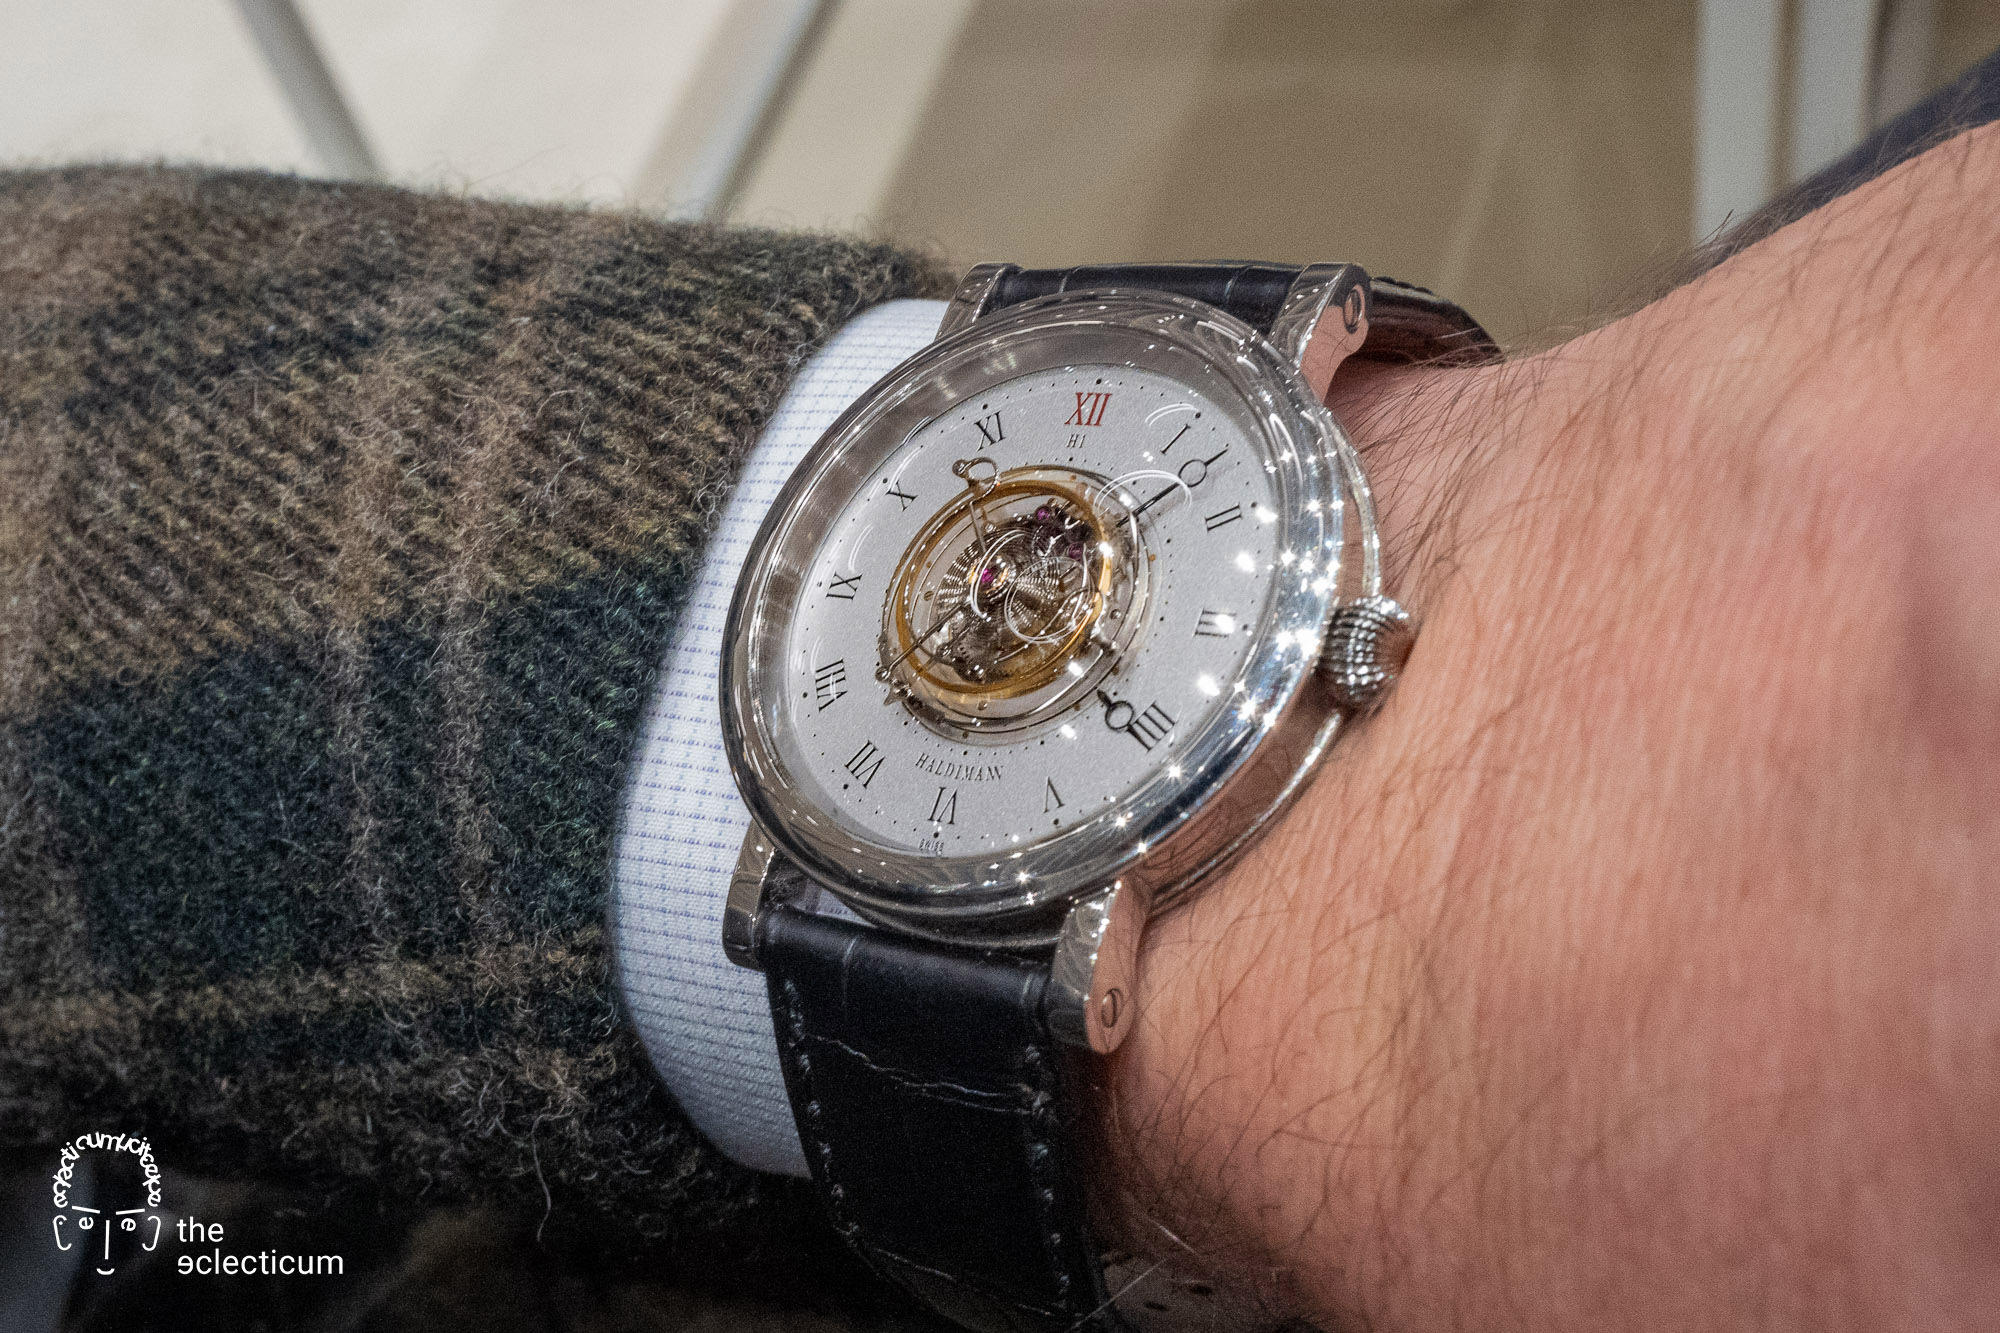 Haldimann H1 Flying central tourbillon ahci independent watchmaking wristshot